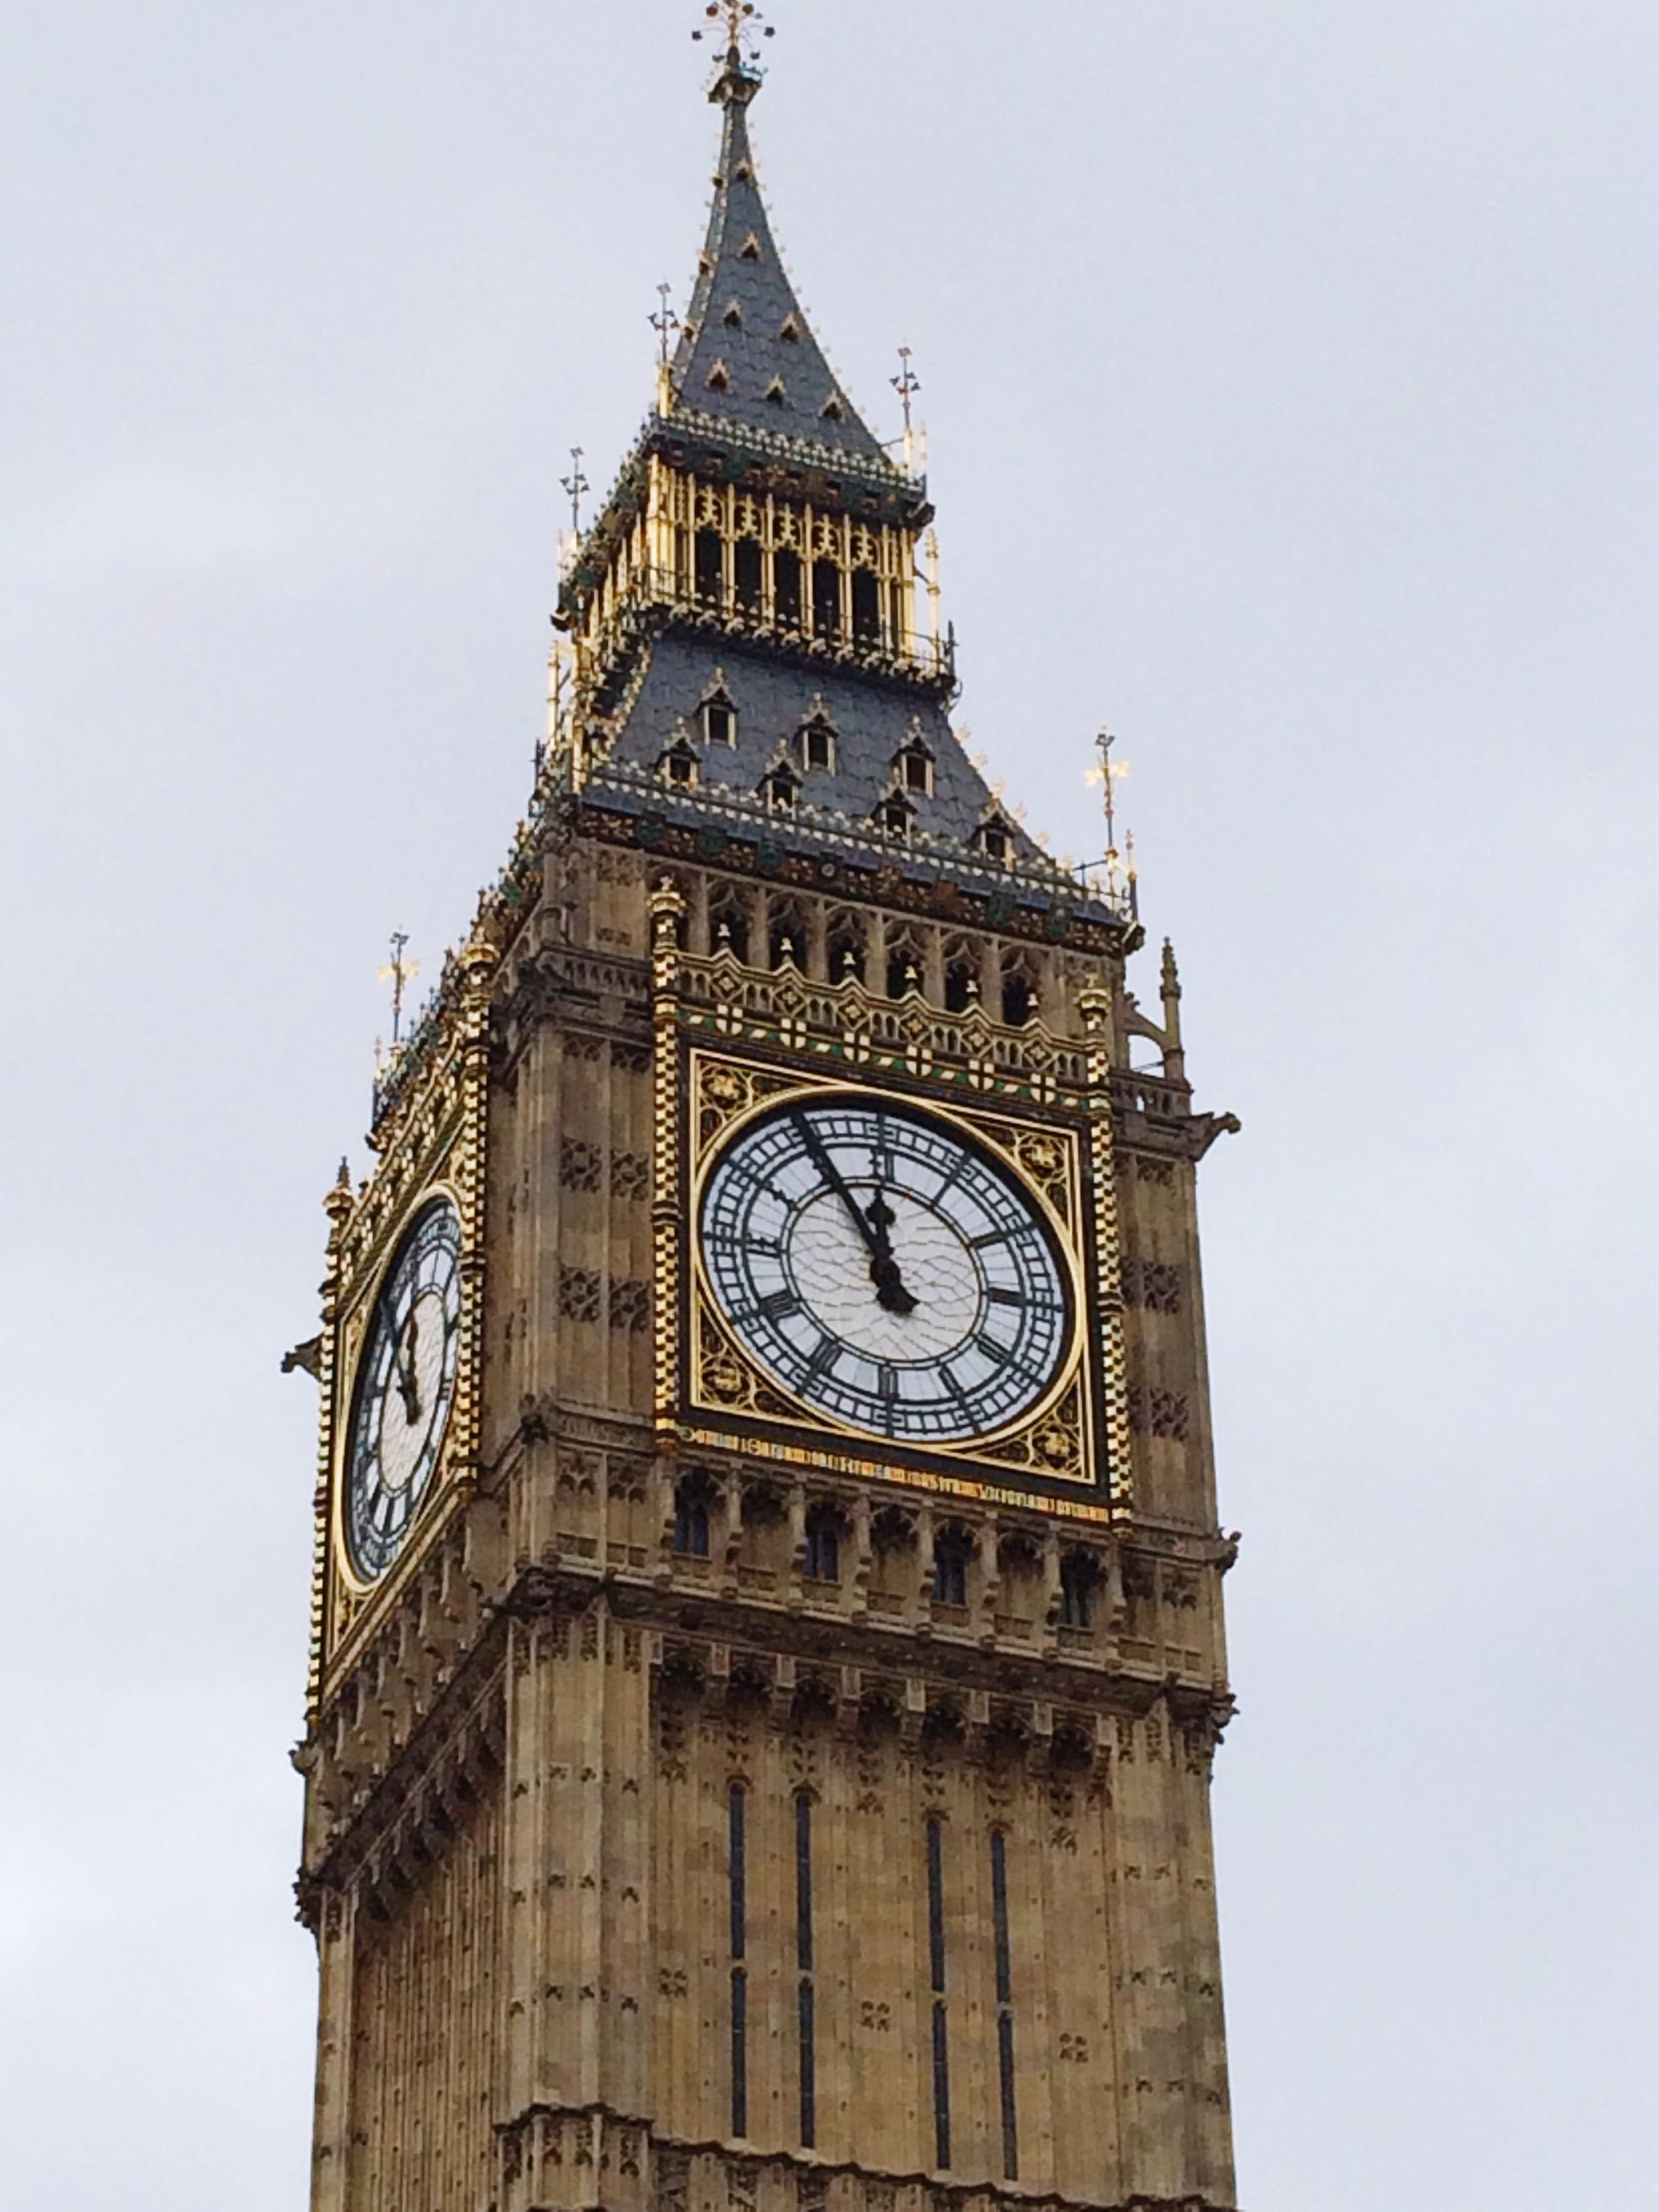 architecture, low angle view, clock, clock tower, built structure, tower, building exterior, time, tall - high, clear sky, famous place, travel destinations, international landmark, history, capital cities, big ben, sky, tourism, travel, religion